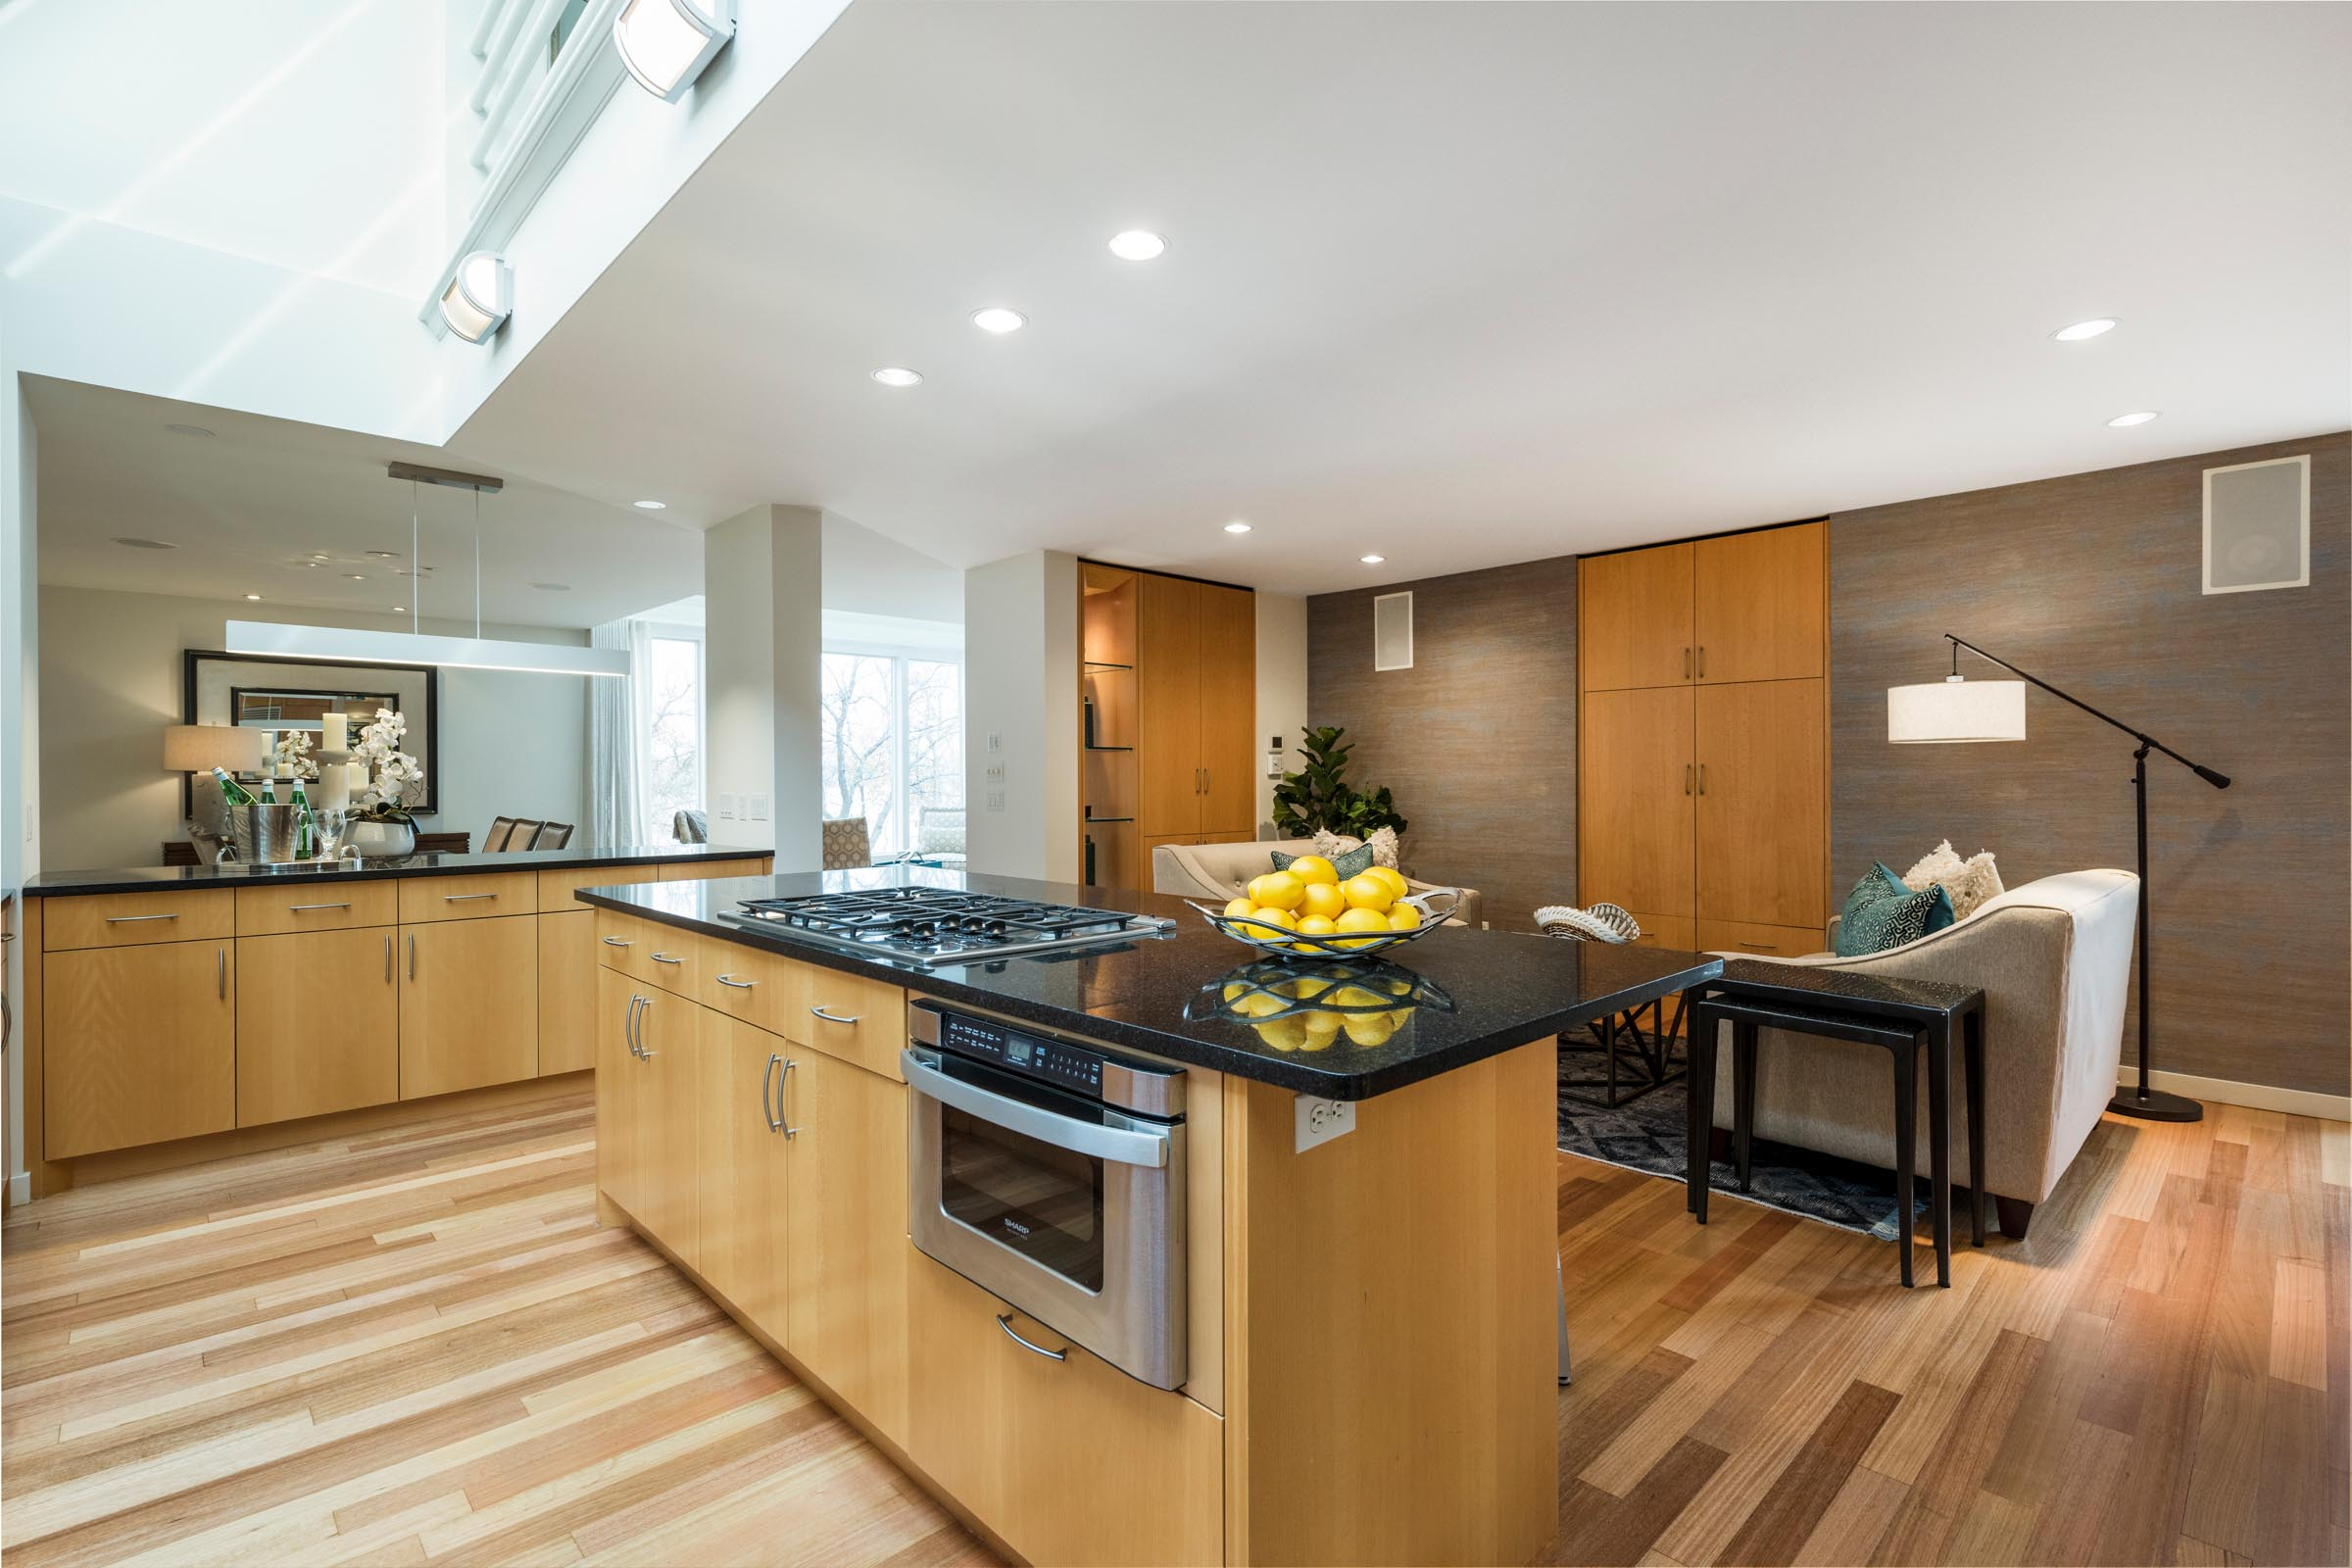 Home Staging Contemporary Kitchen with Hardwood Floors